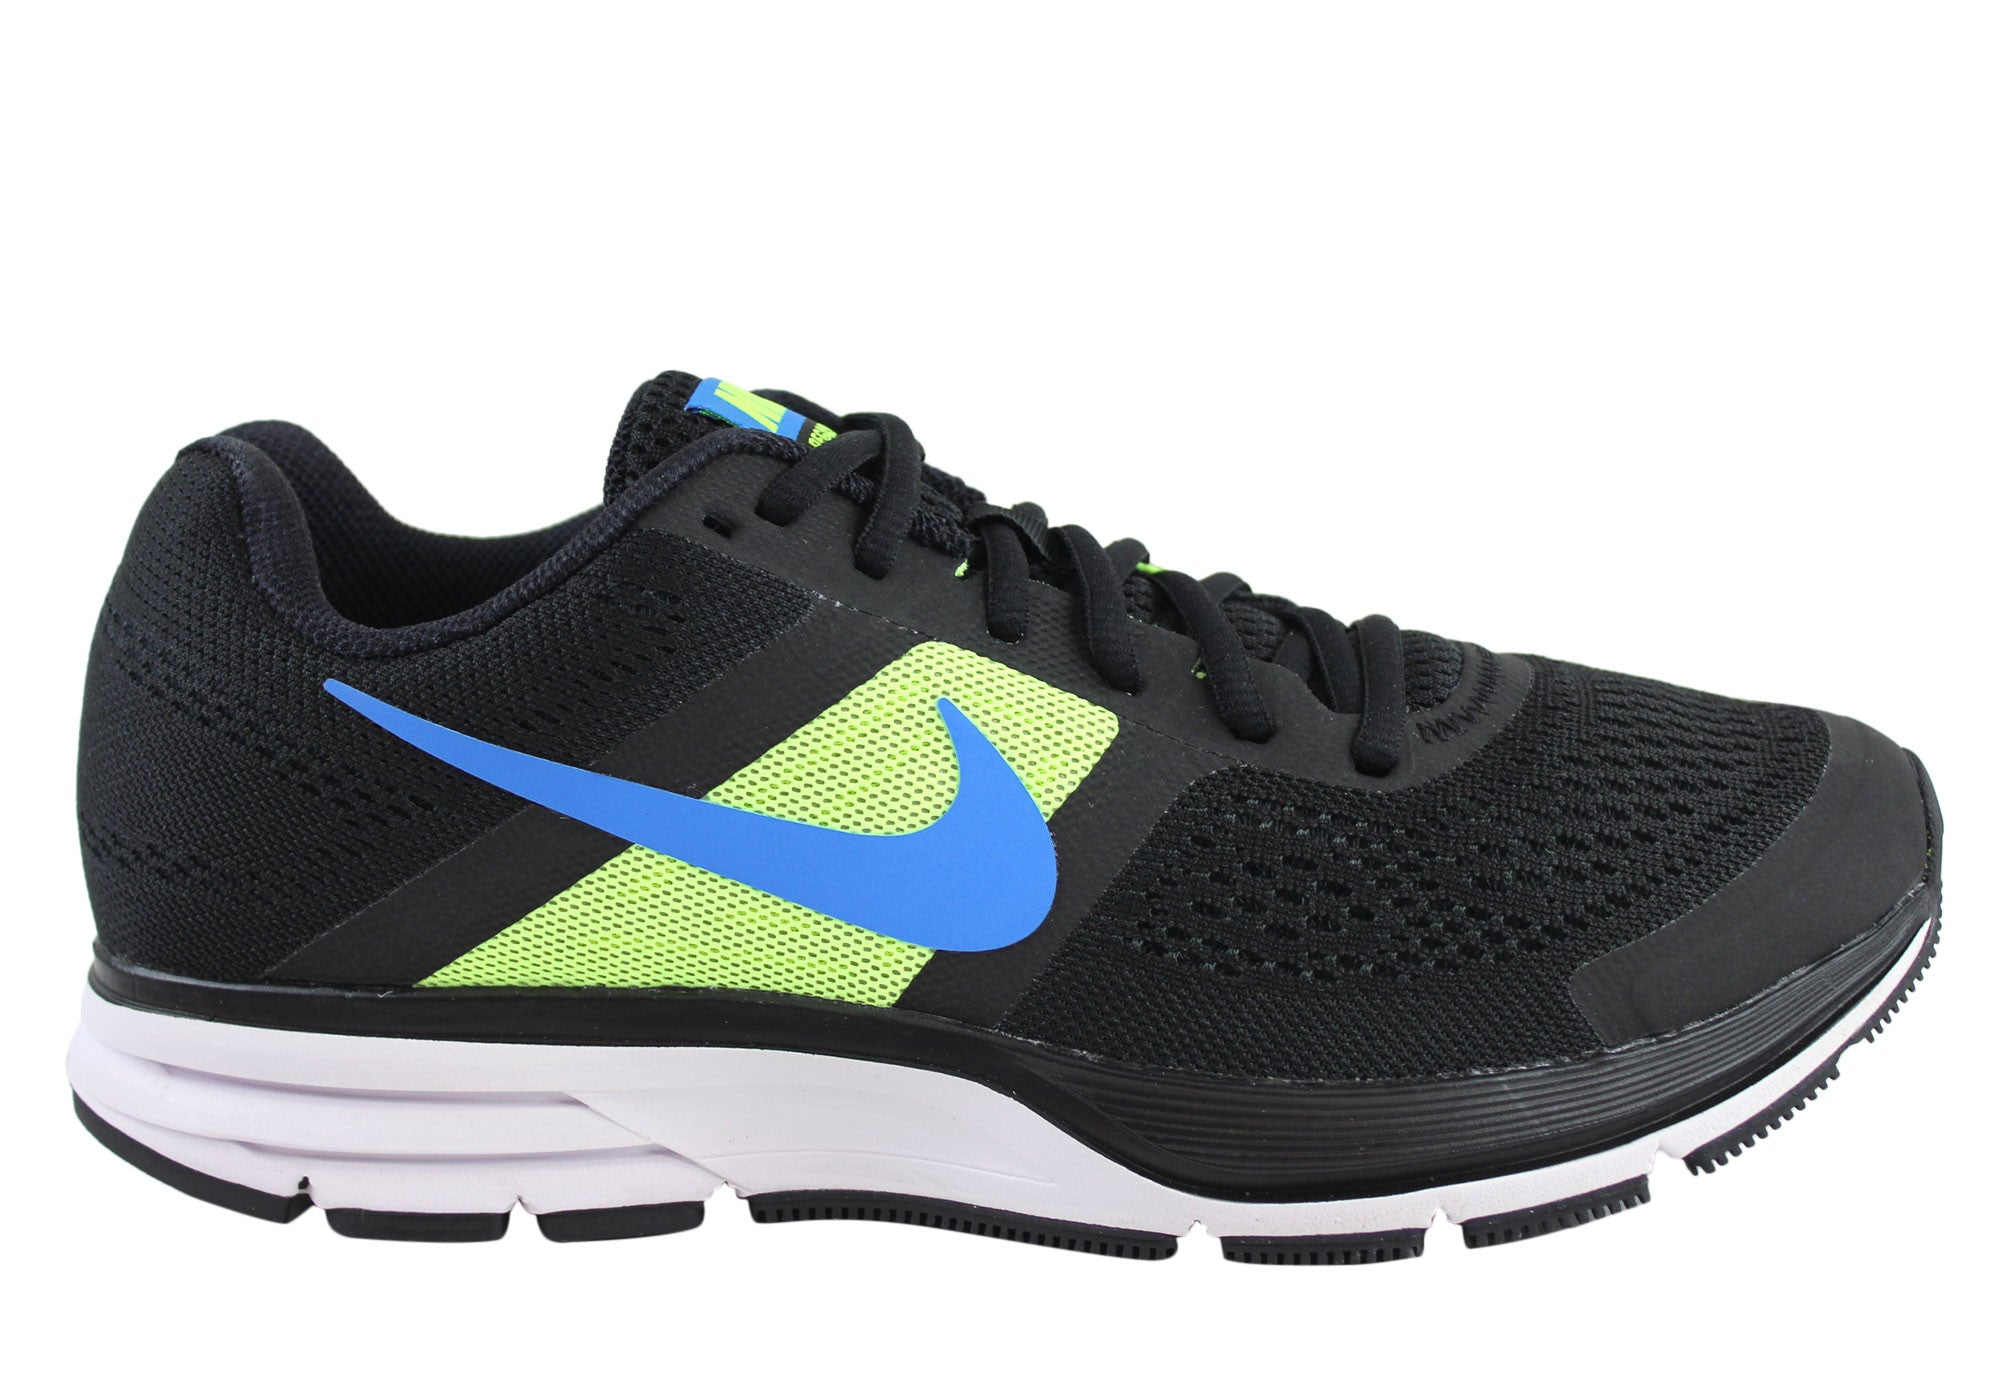 Details about Brand New Nike Air Pegasus +30 Mens Running Shoes